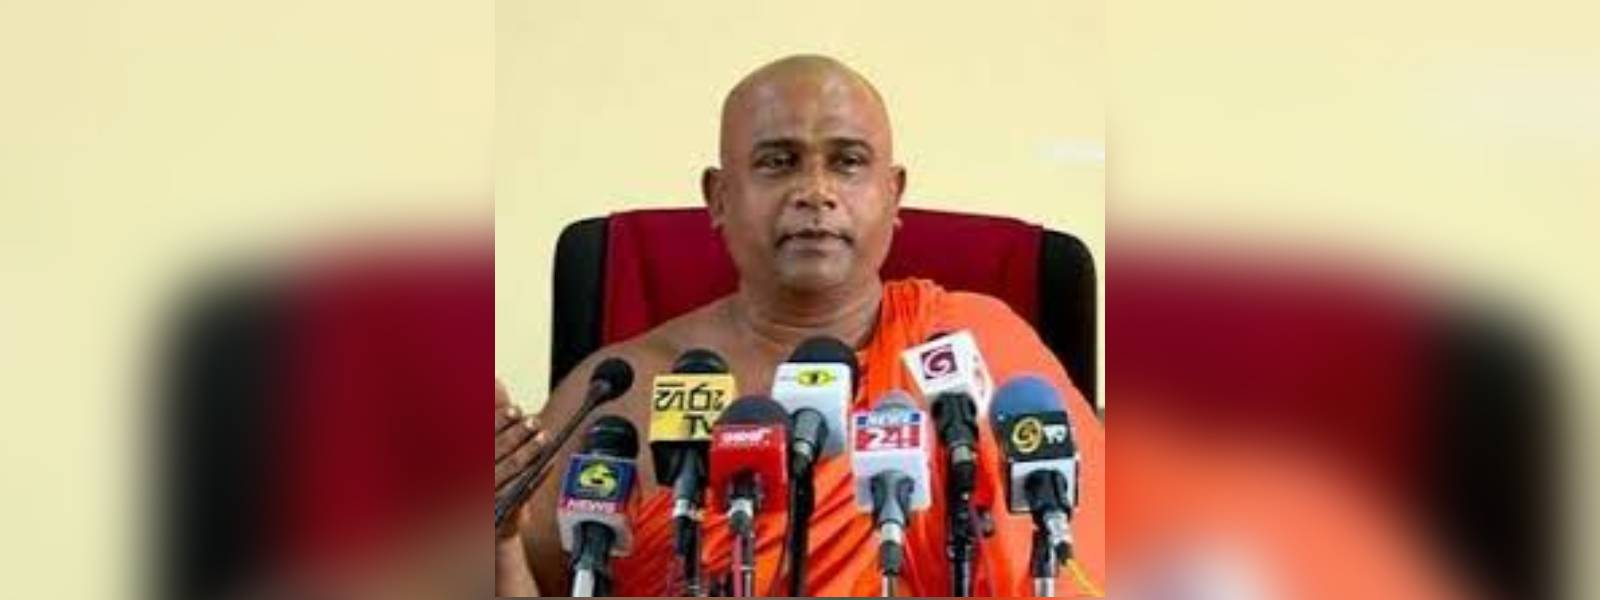 Government must not abuse powers : Sinhala Ravaya